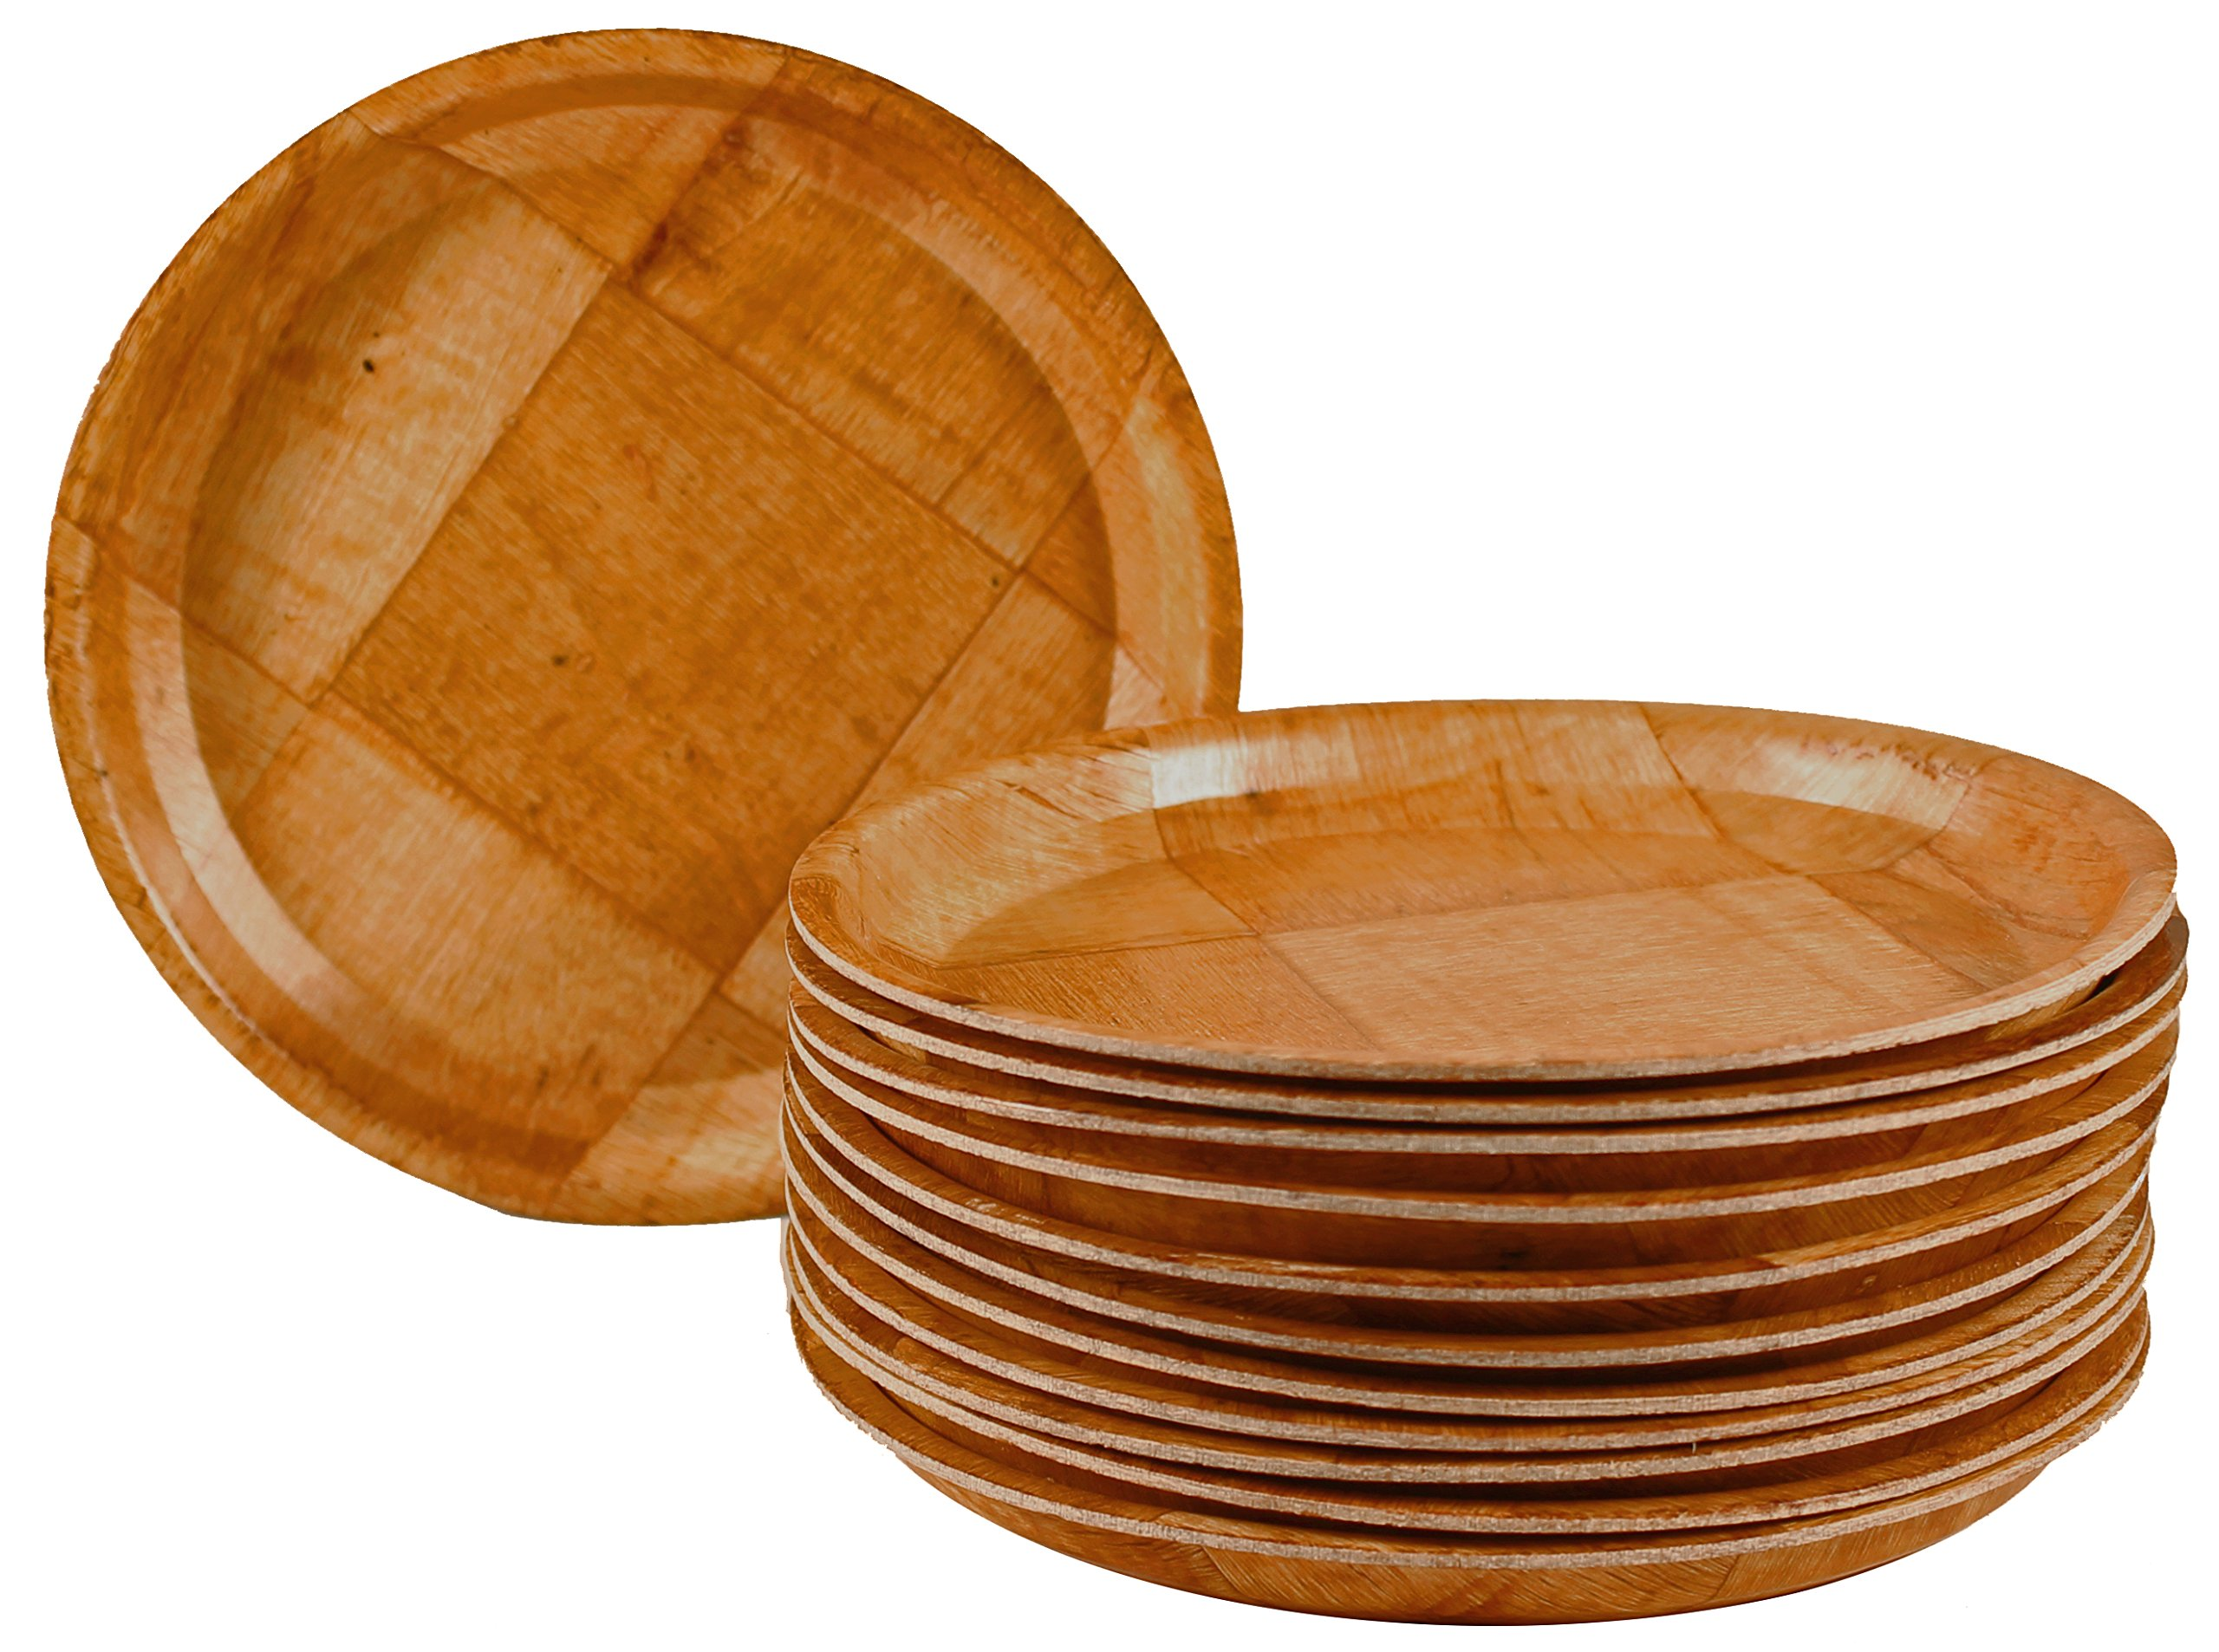 Woven Wood Rimmed Appetizer Plates with Pan Scraper (12-Pack, 6 Inch)